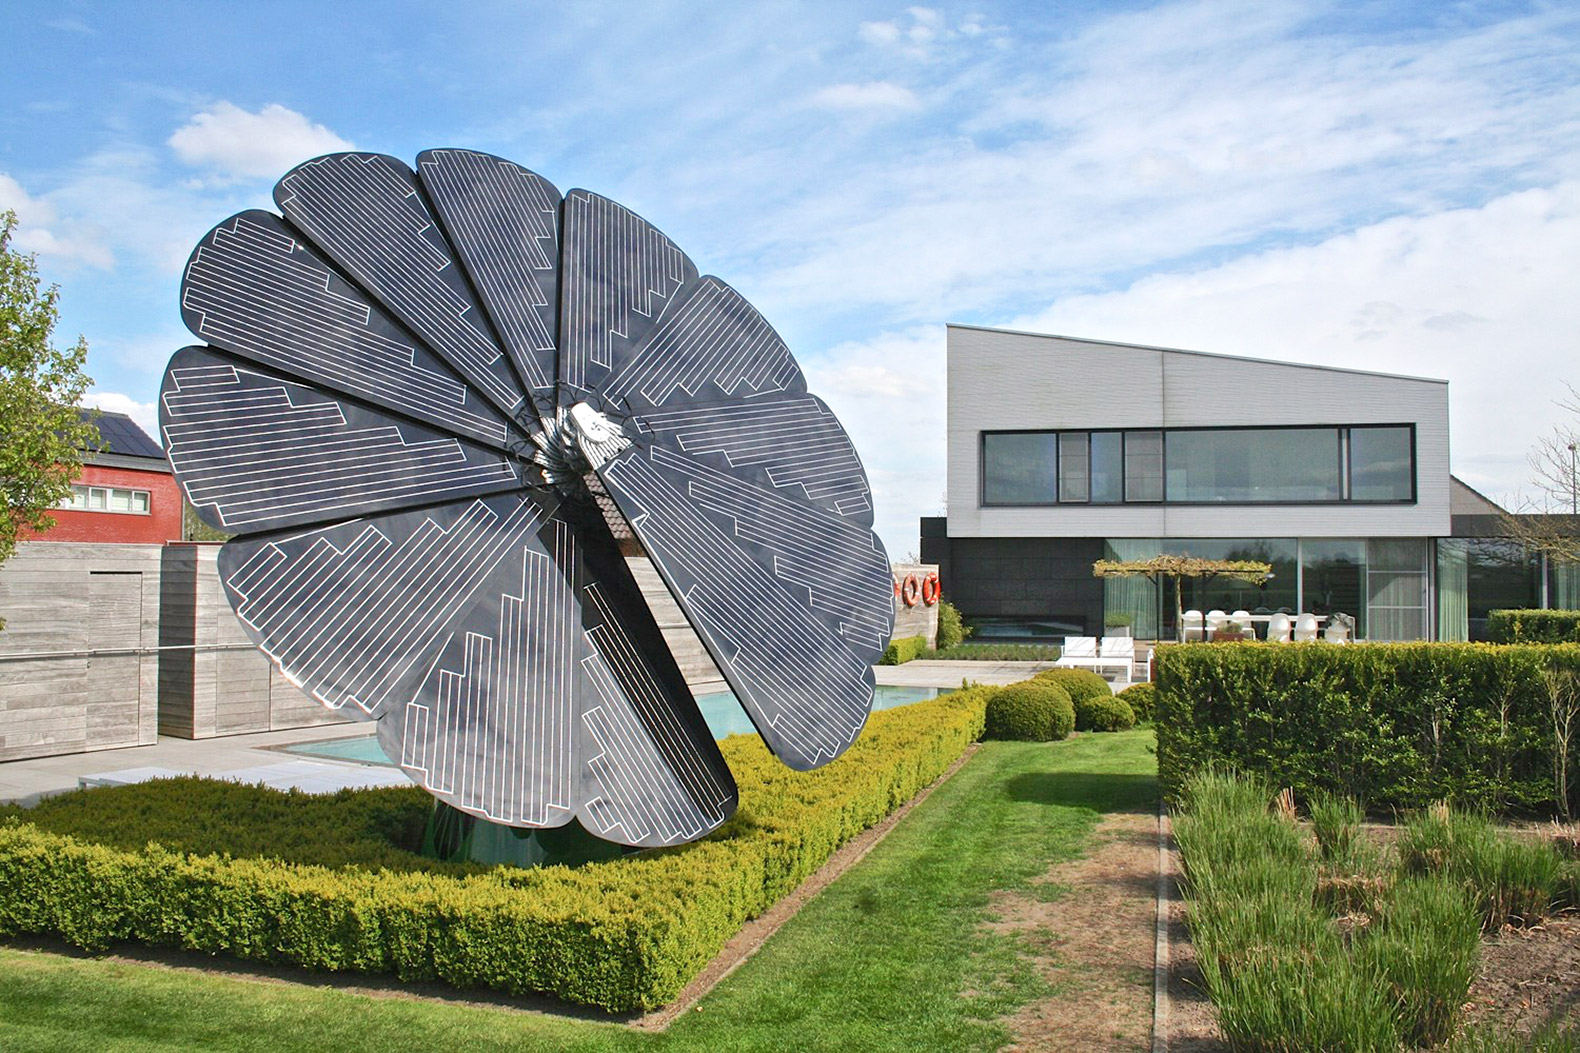 Watch this groundbreaking new solar device open and move like a flower